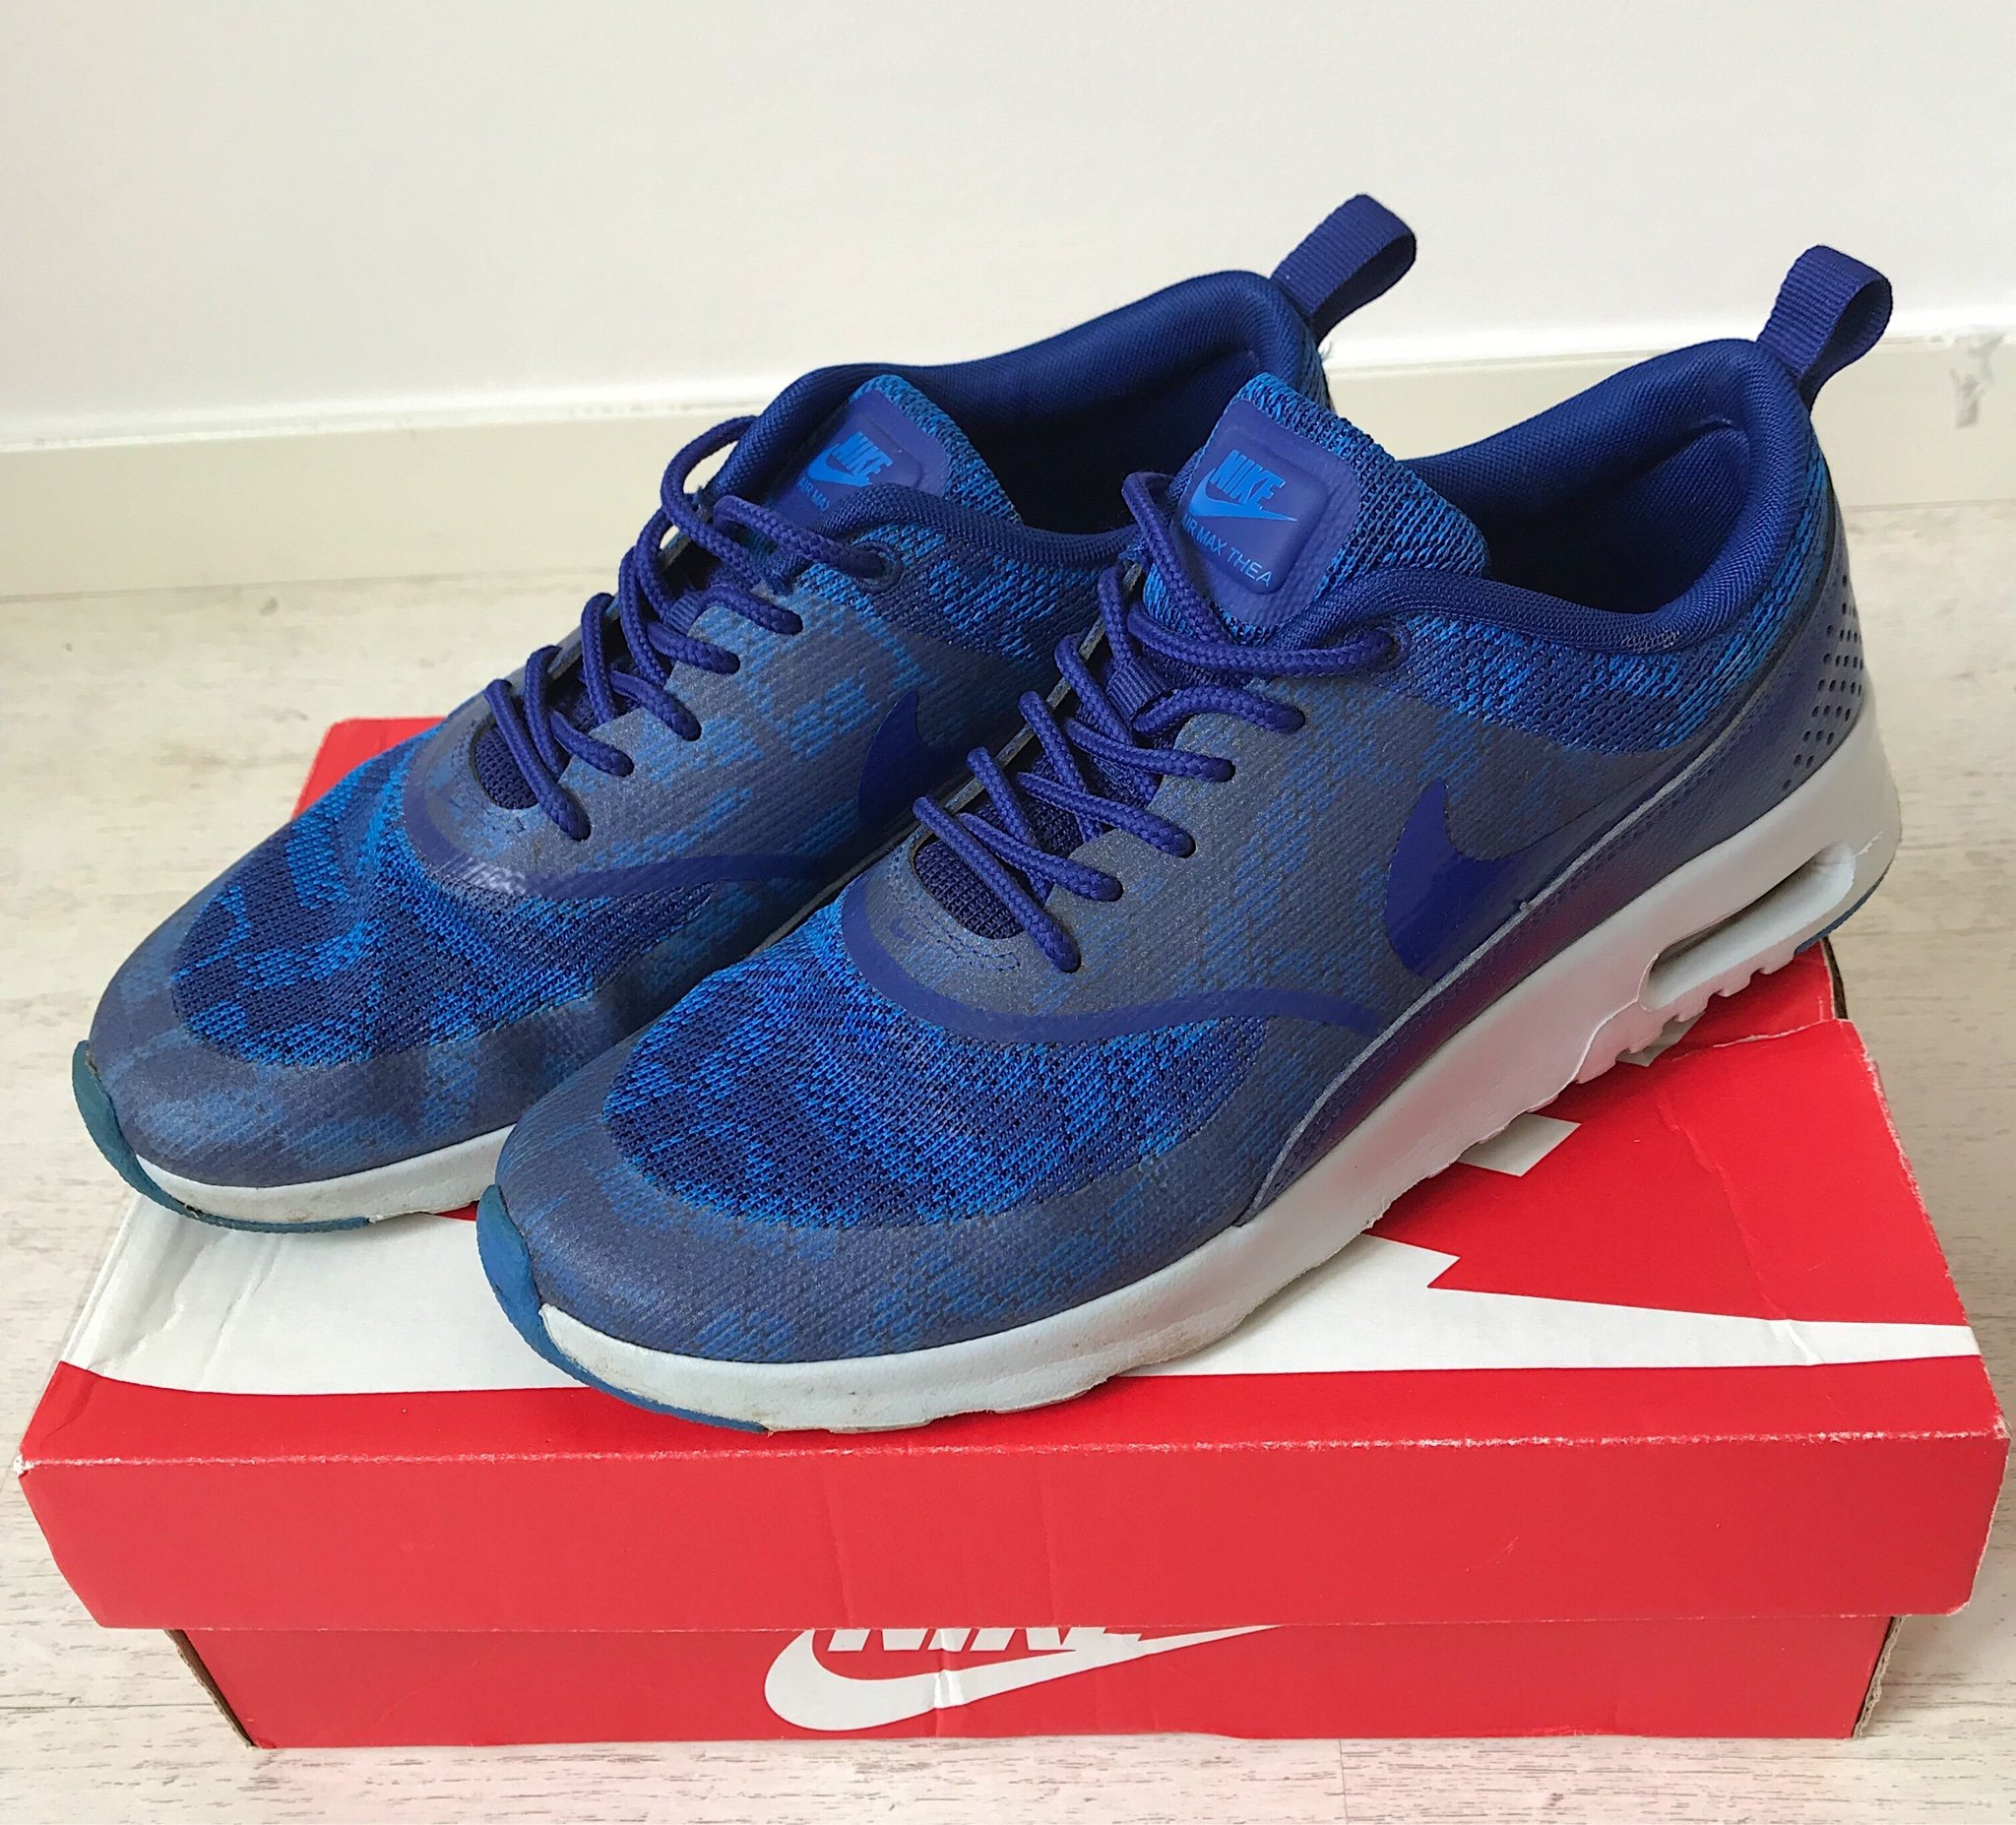 new product 30390 bd58d Blå Nike Air Max Thea strl 38,5